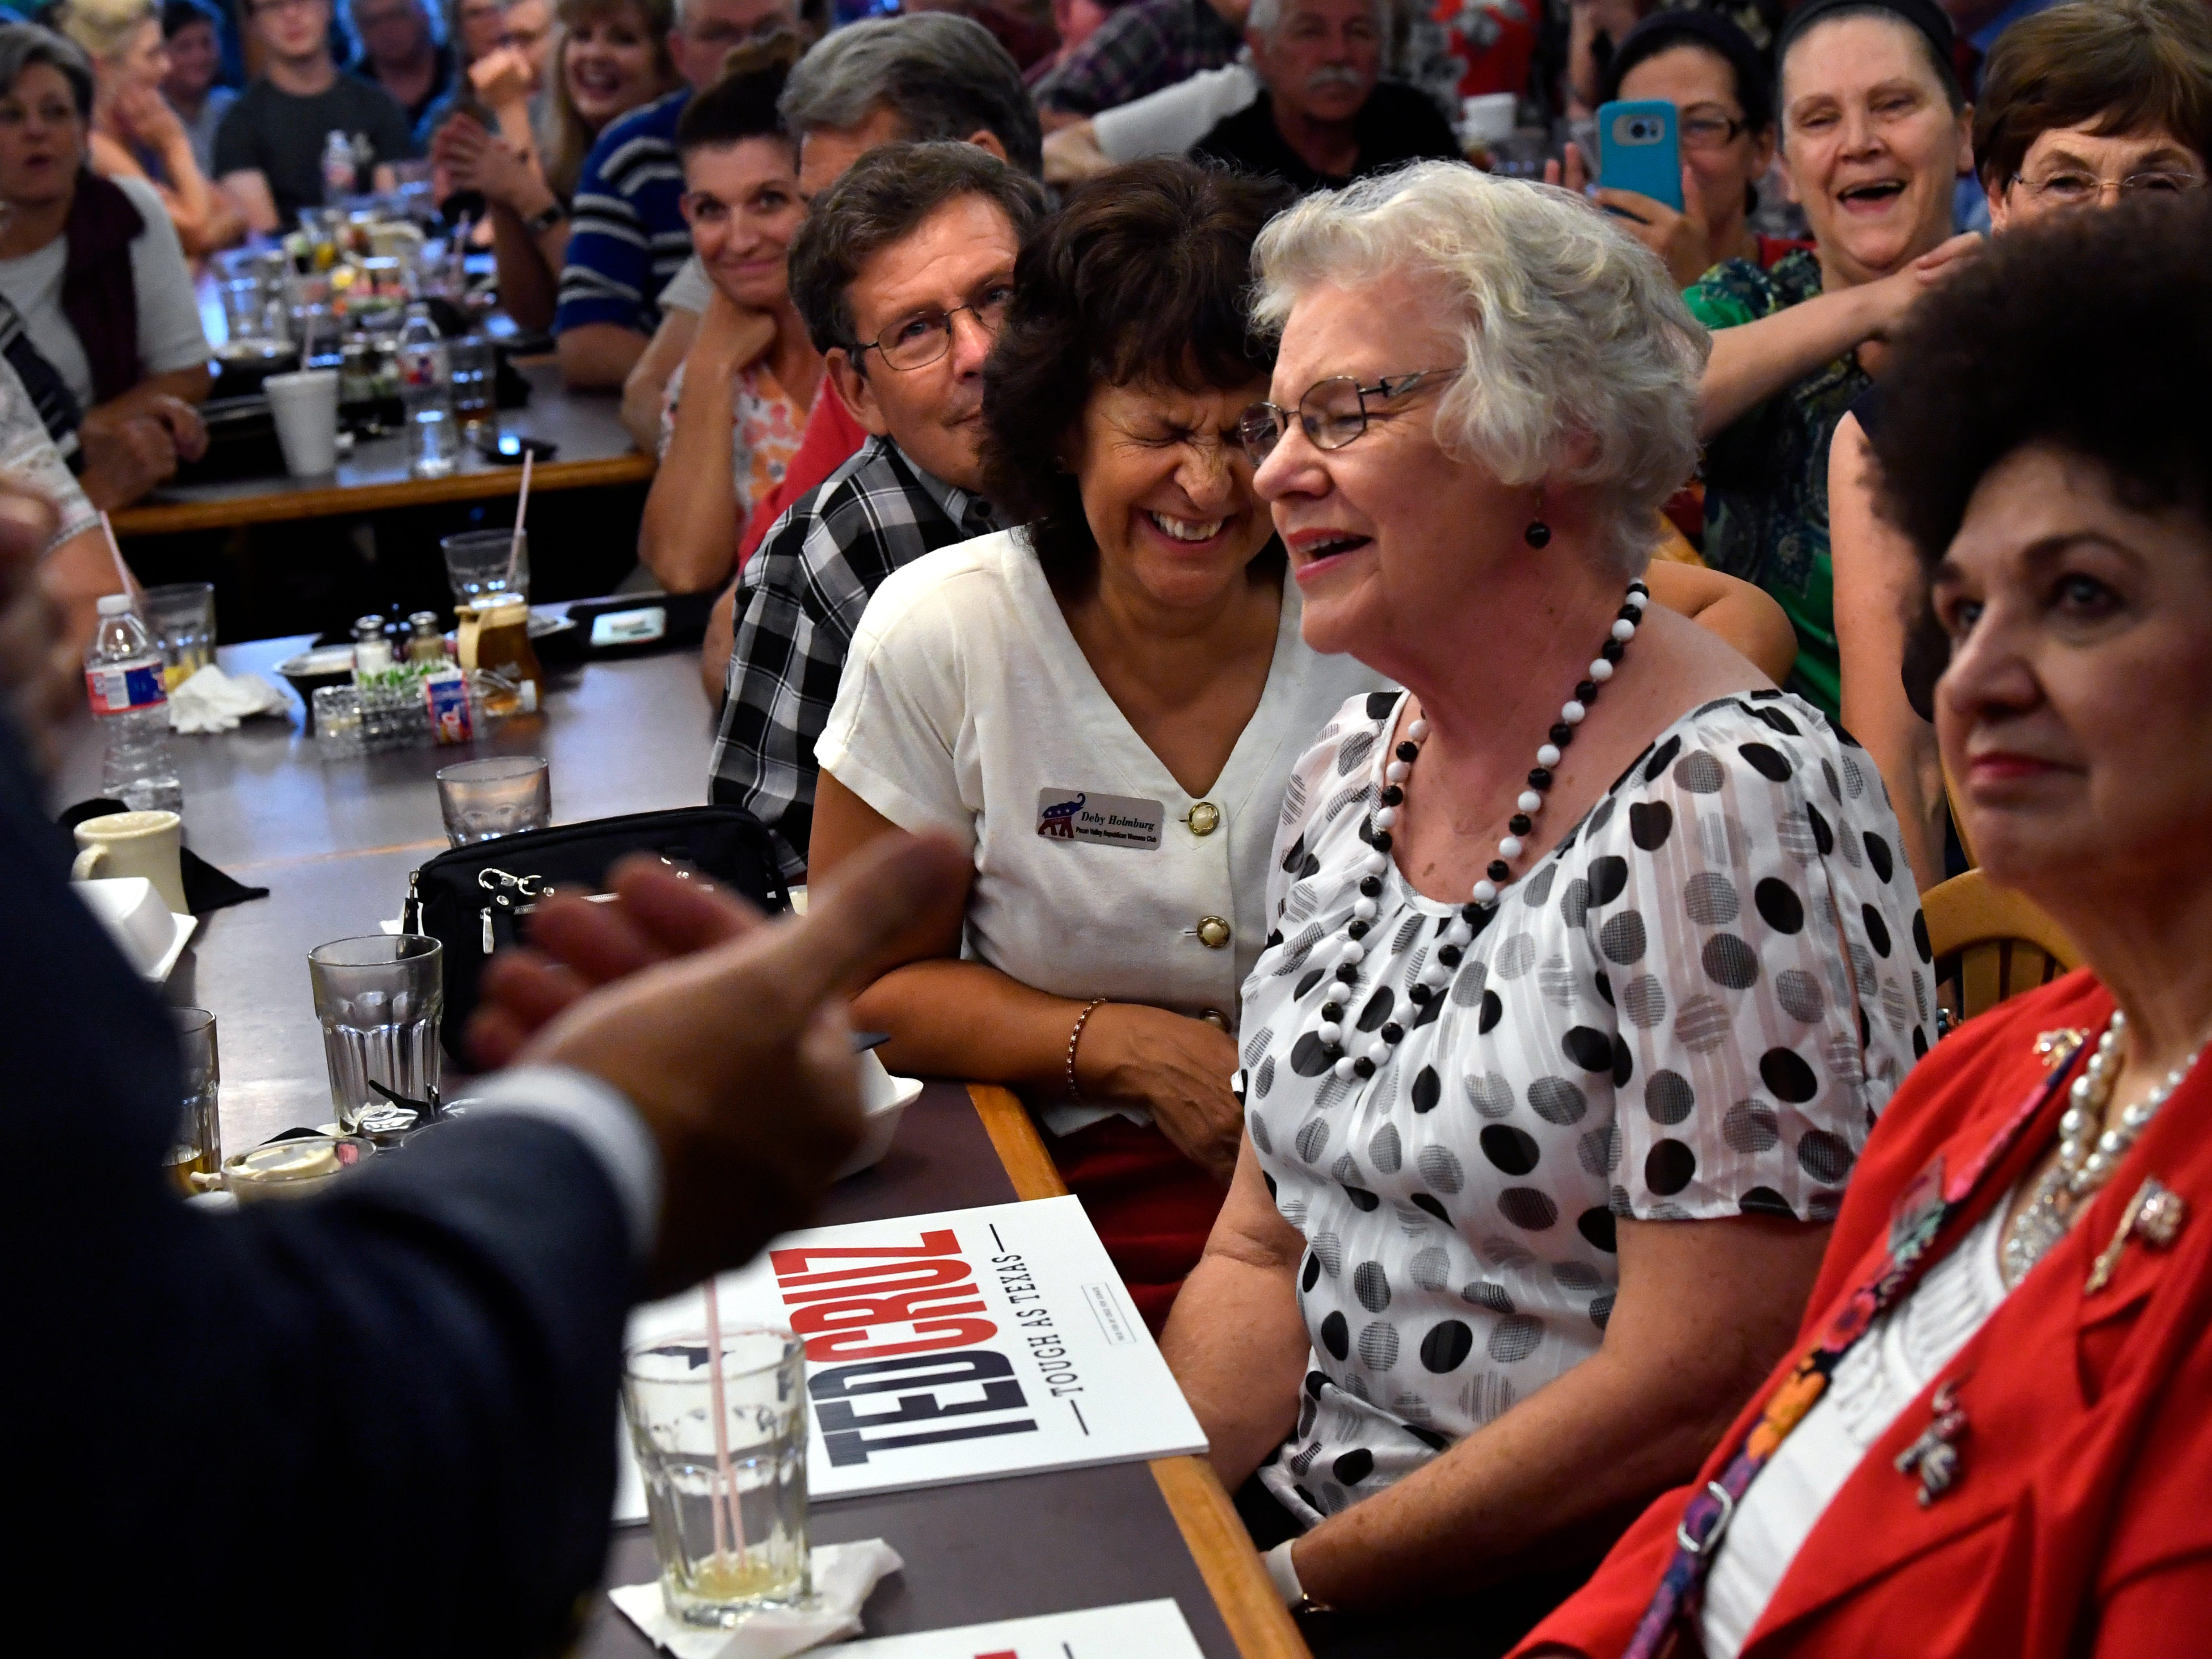 Attendees laugh at Senator Ted Cruz's remarks during a town hall meeting Thursday August 9, 2018 in Brownwood. Cruz spoke to and greeted supporters for over 90 minutes at Underwood's Cafeteria.